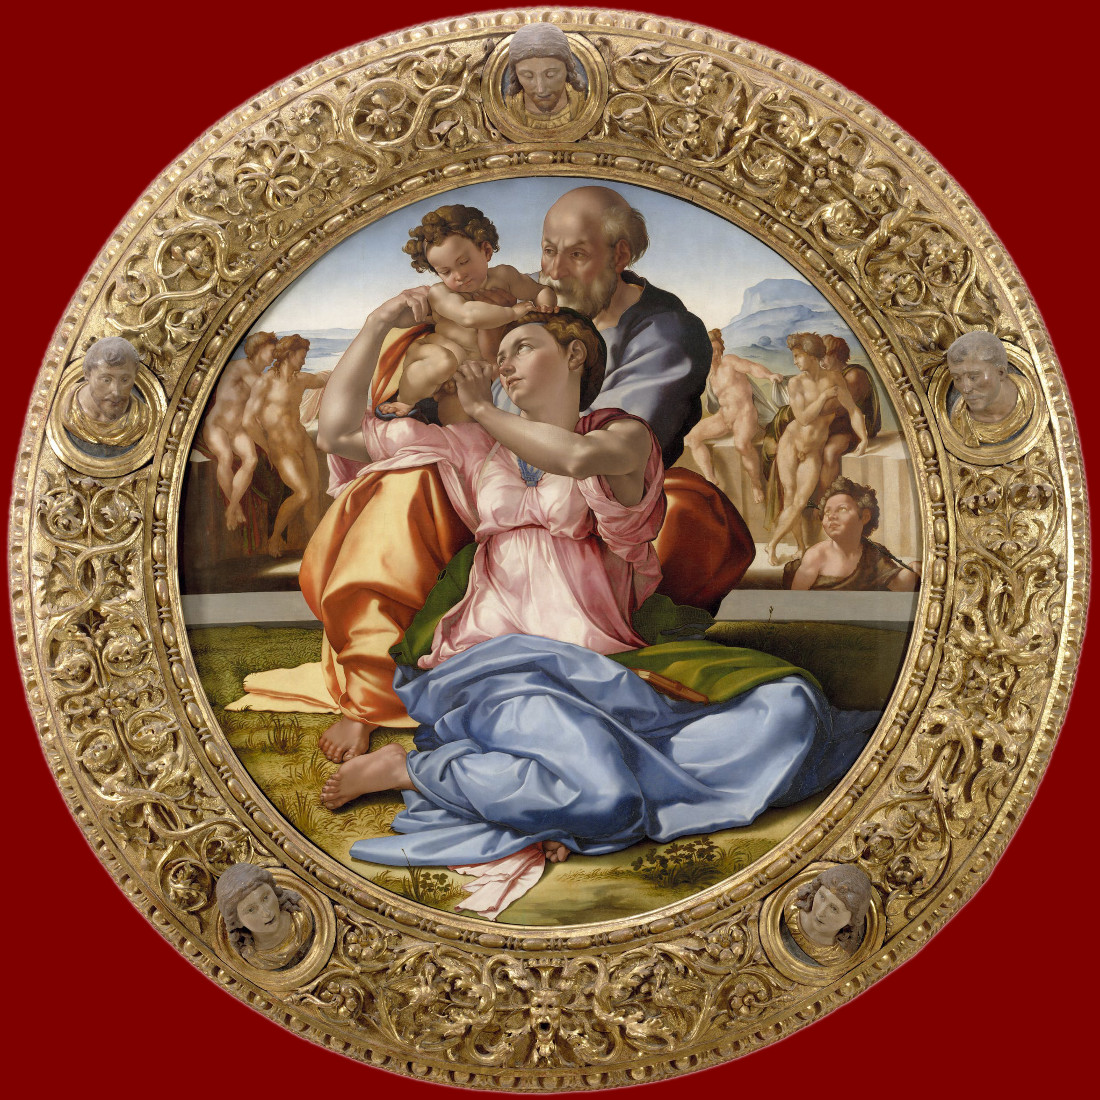 Michelangelo Buonarroti: The Holy Family